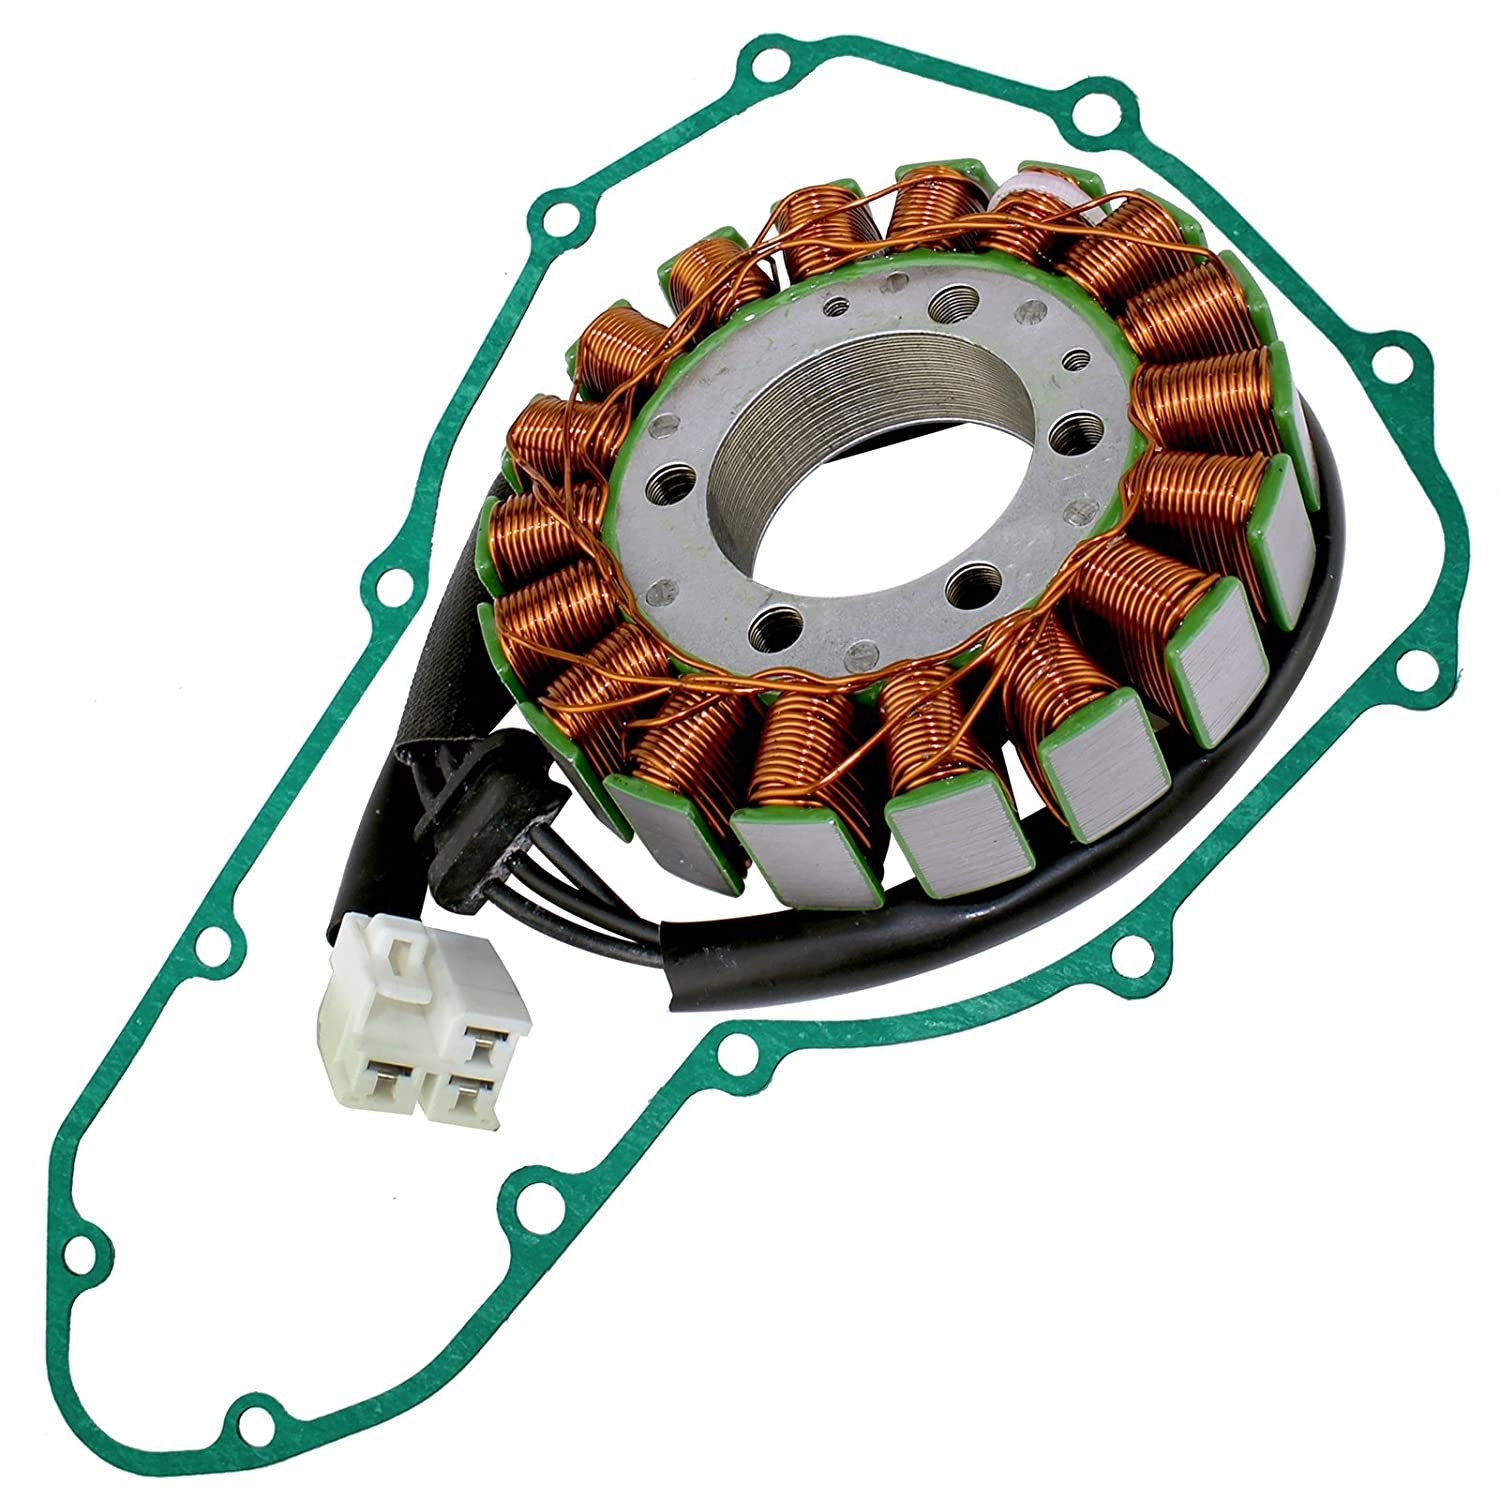 Amazon.com: Caltric Stator And Gasket for Kawasaki Ninja 650 ...